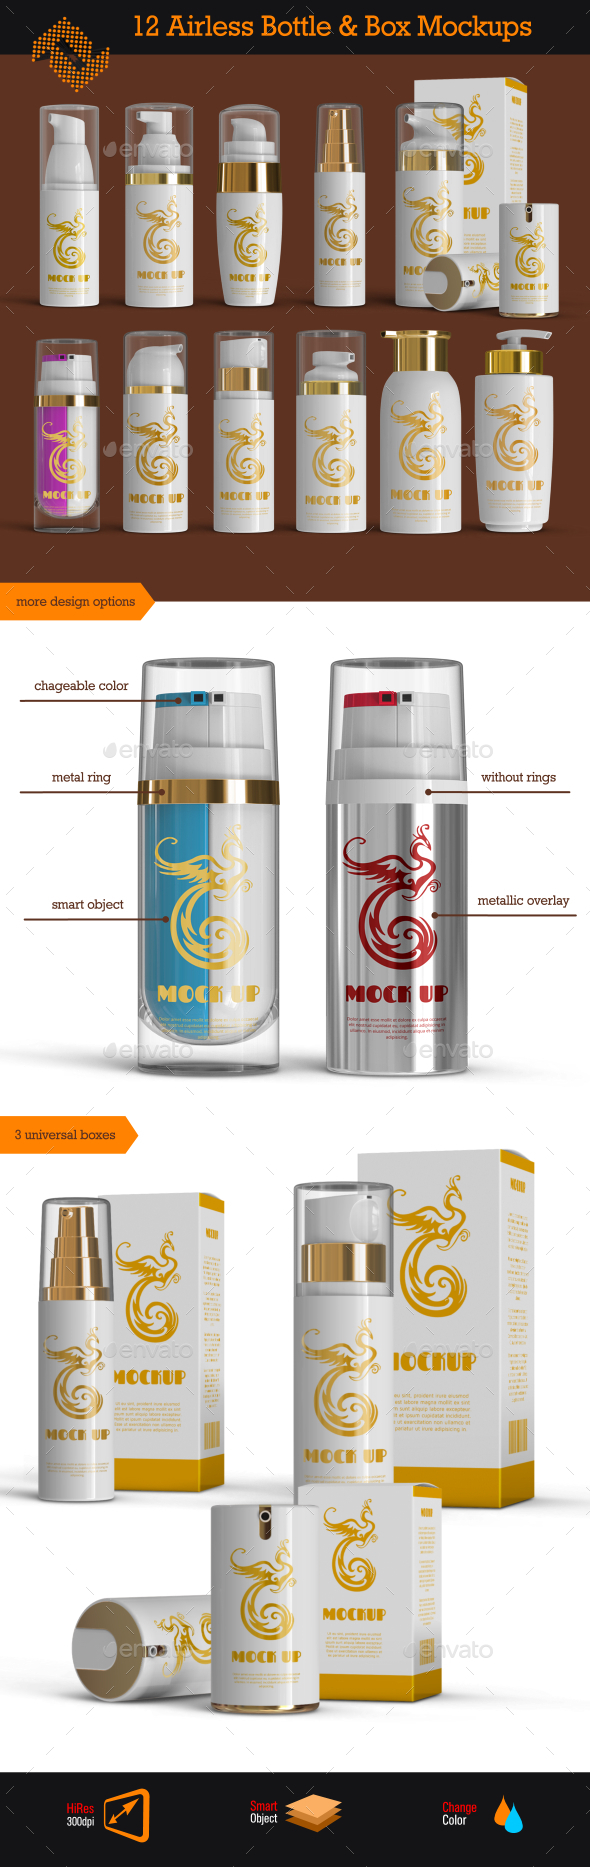 12 Airless Cosmetic Bottle & Box Mockups - Beauty Packaging